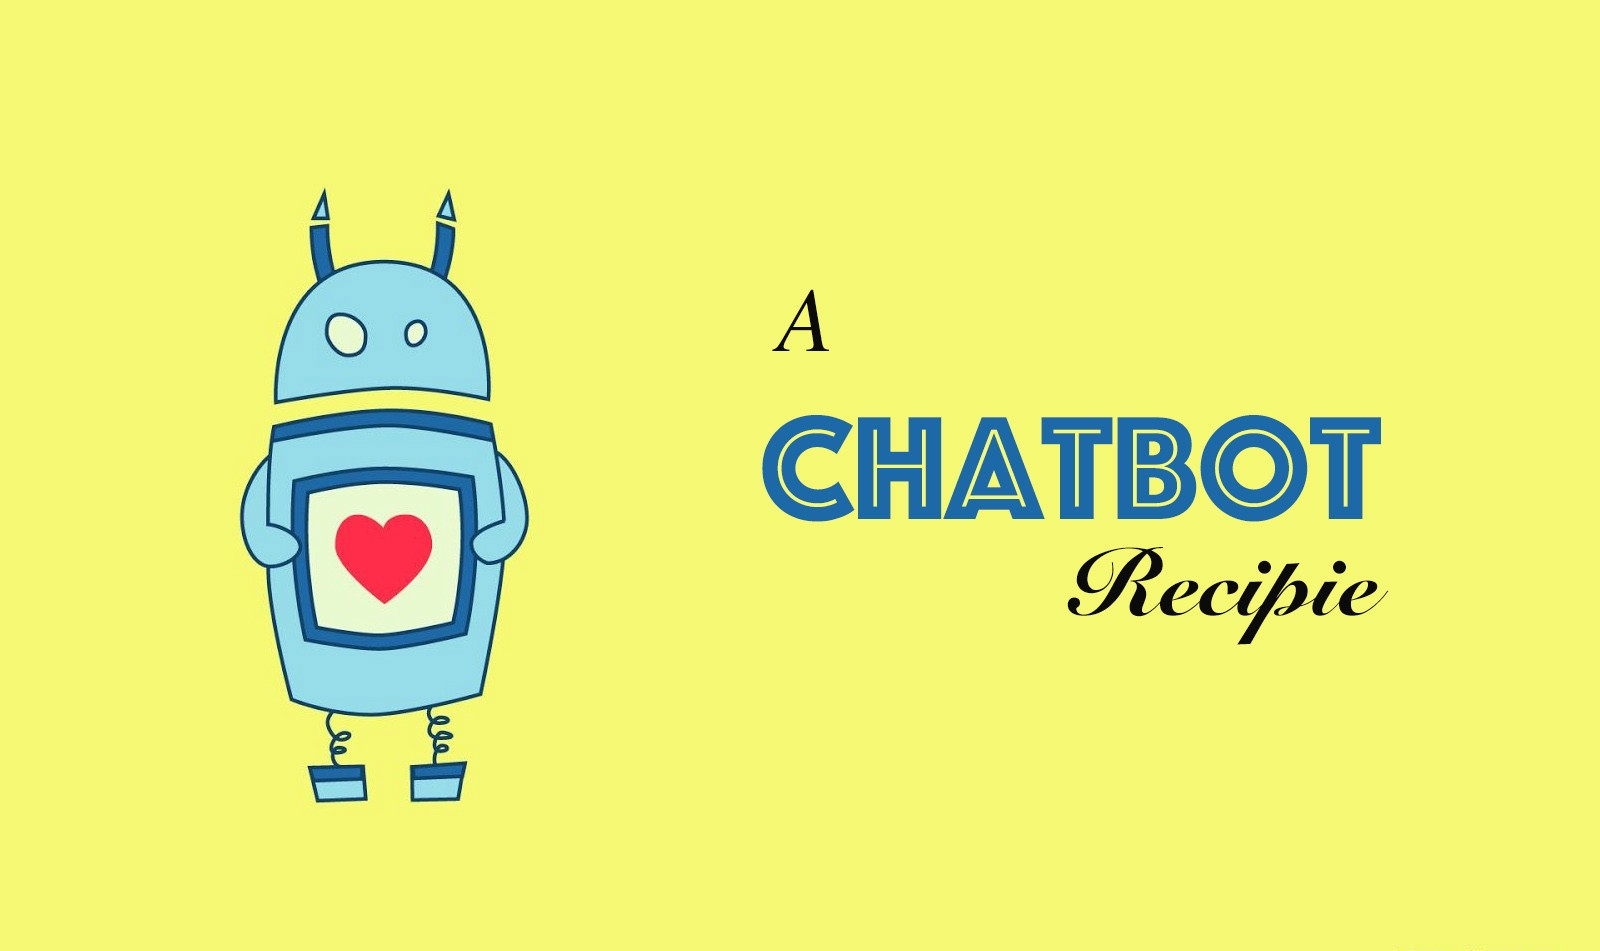 Android — Baking a simple ChatBot in 30 minutes (AIML)